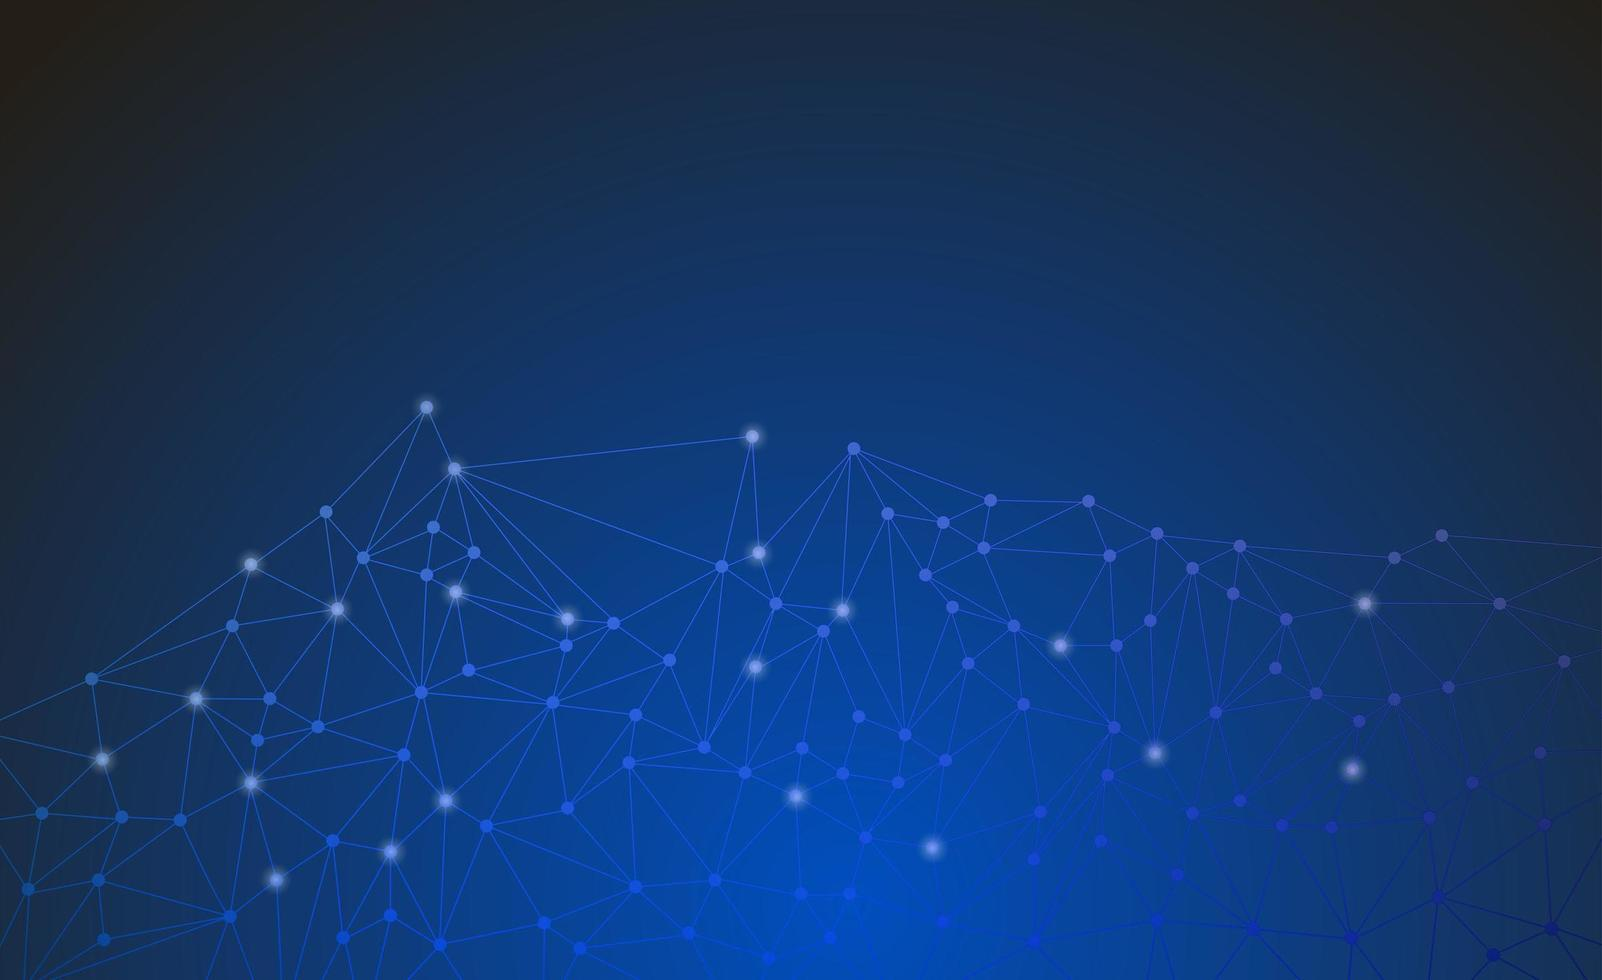 Blue network and technology background vector